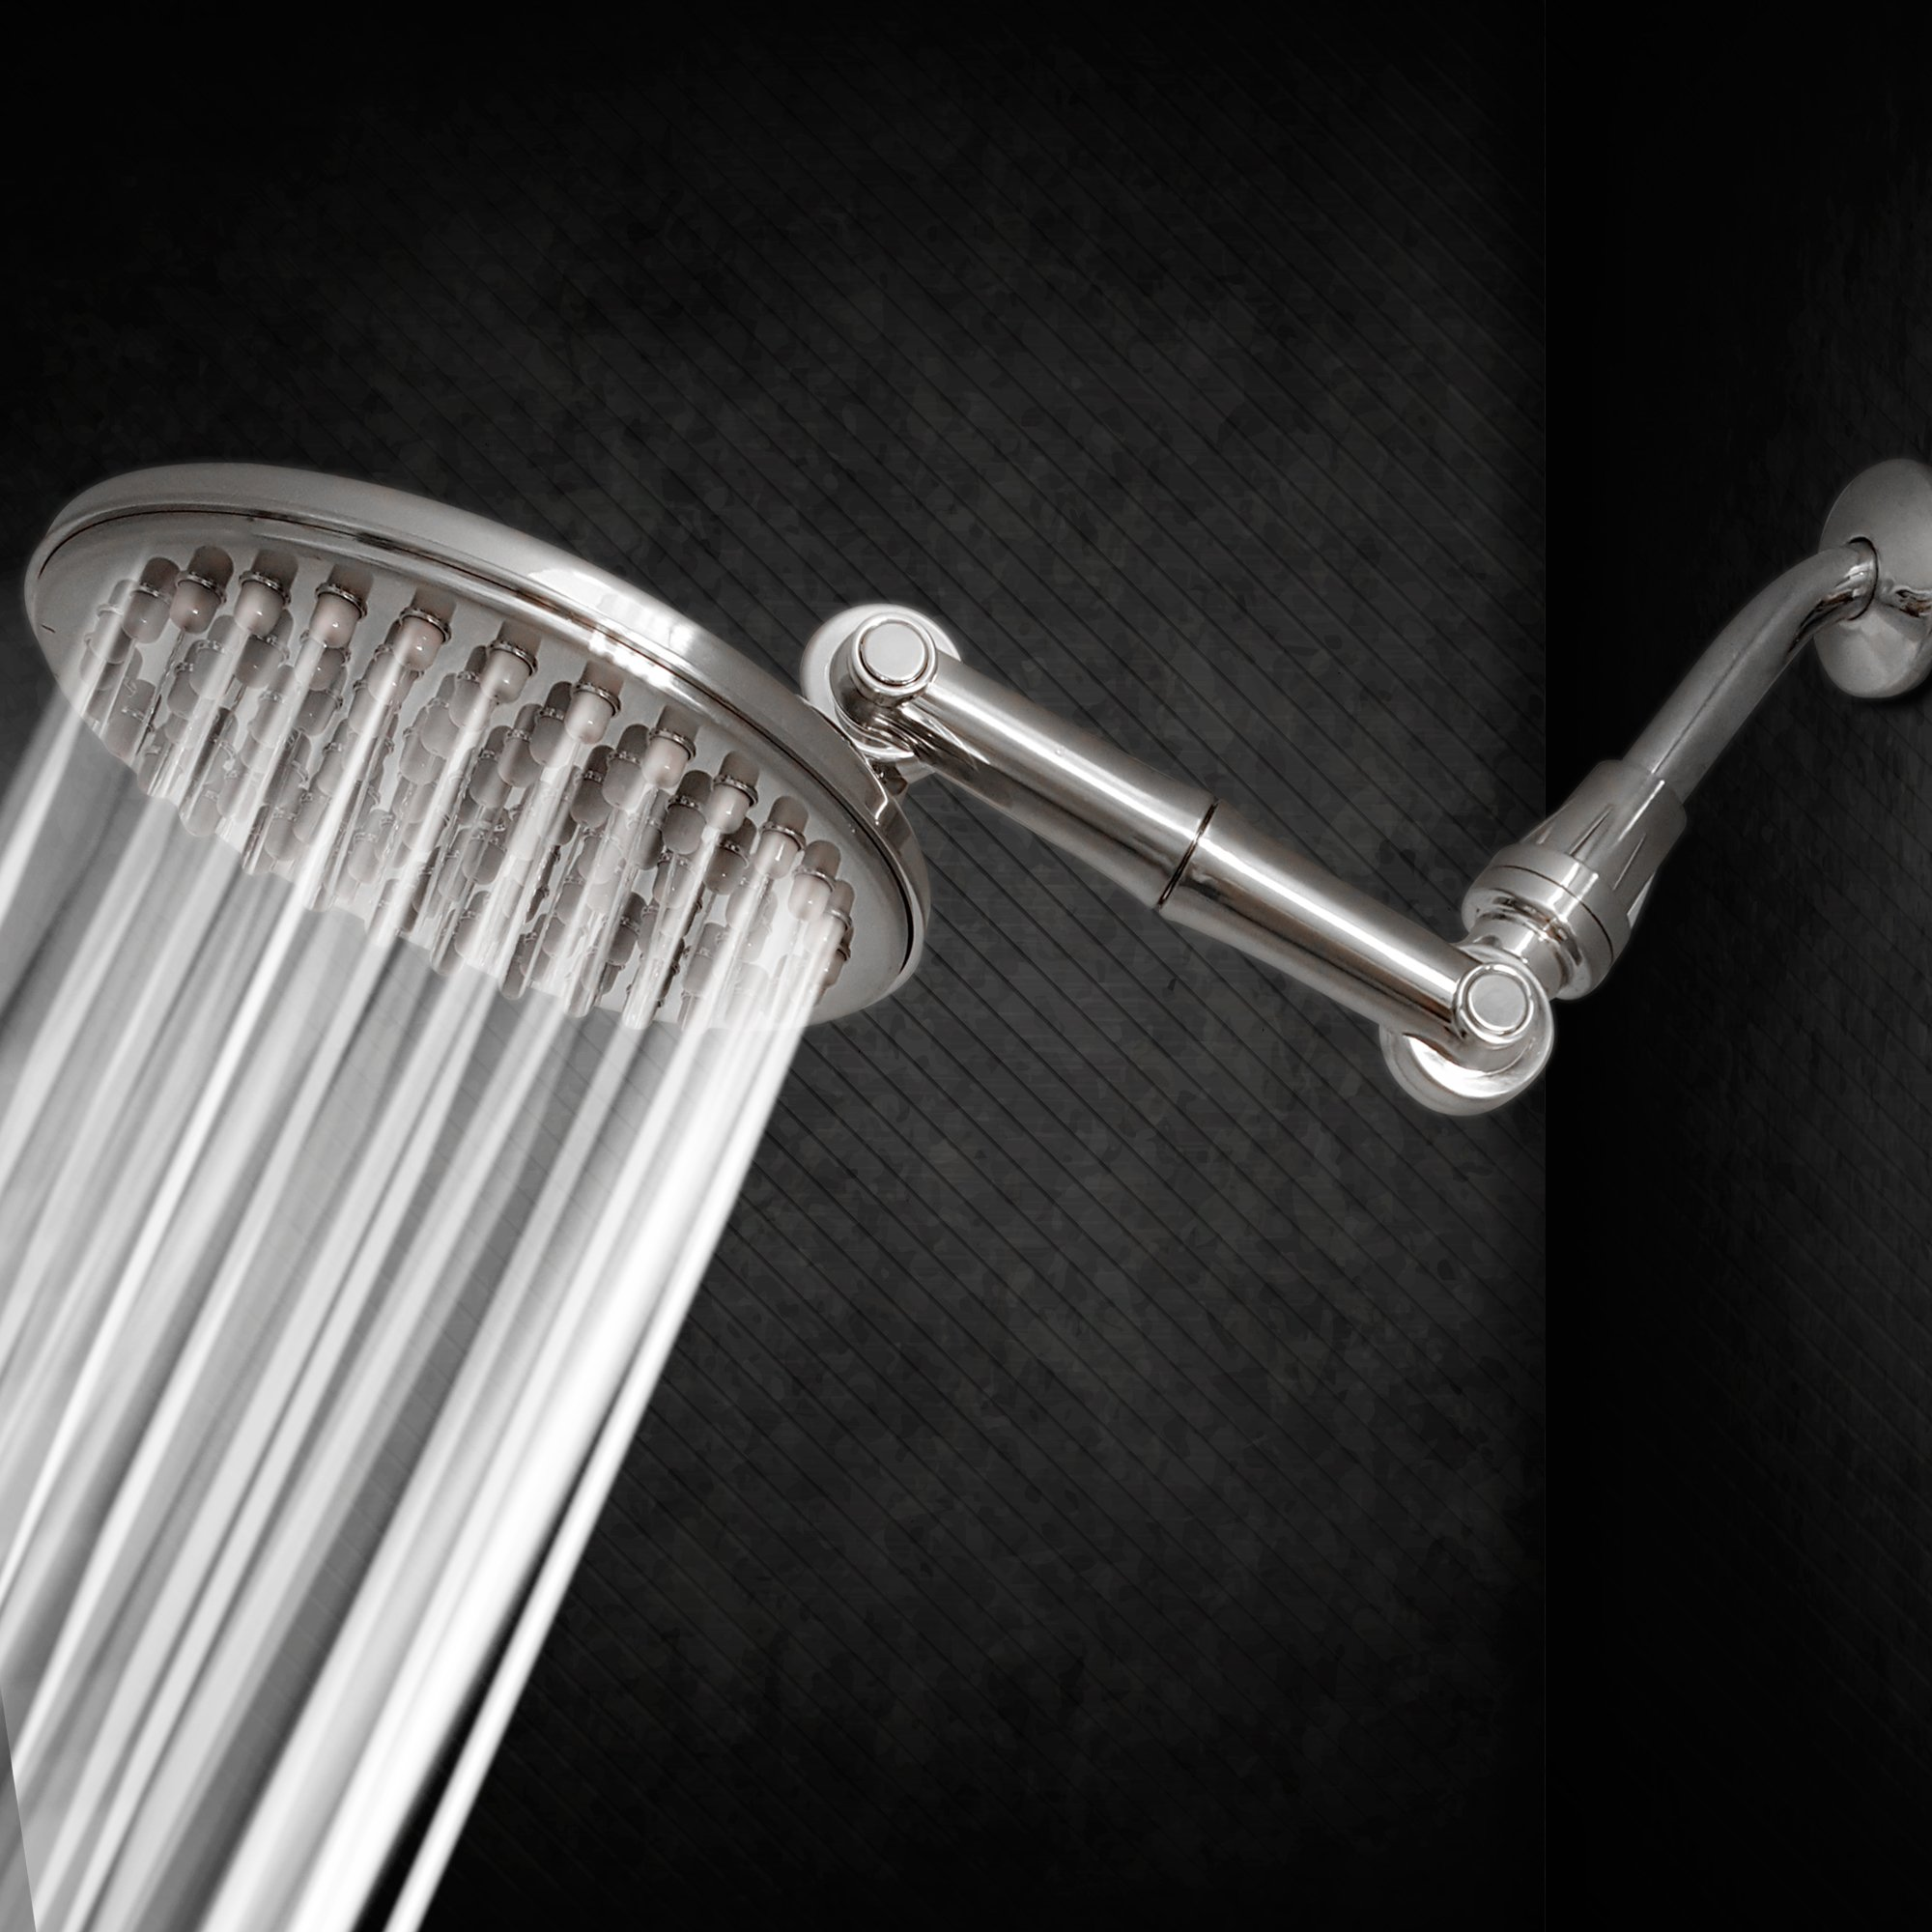 mount rb shower handshower head delta function and in included pk hose with multi speakman ss limited stainless arm gpm brilliance